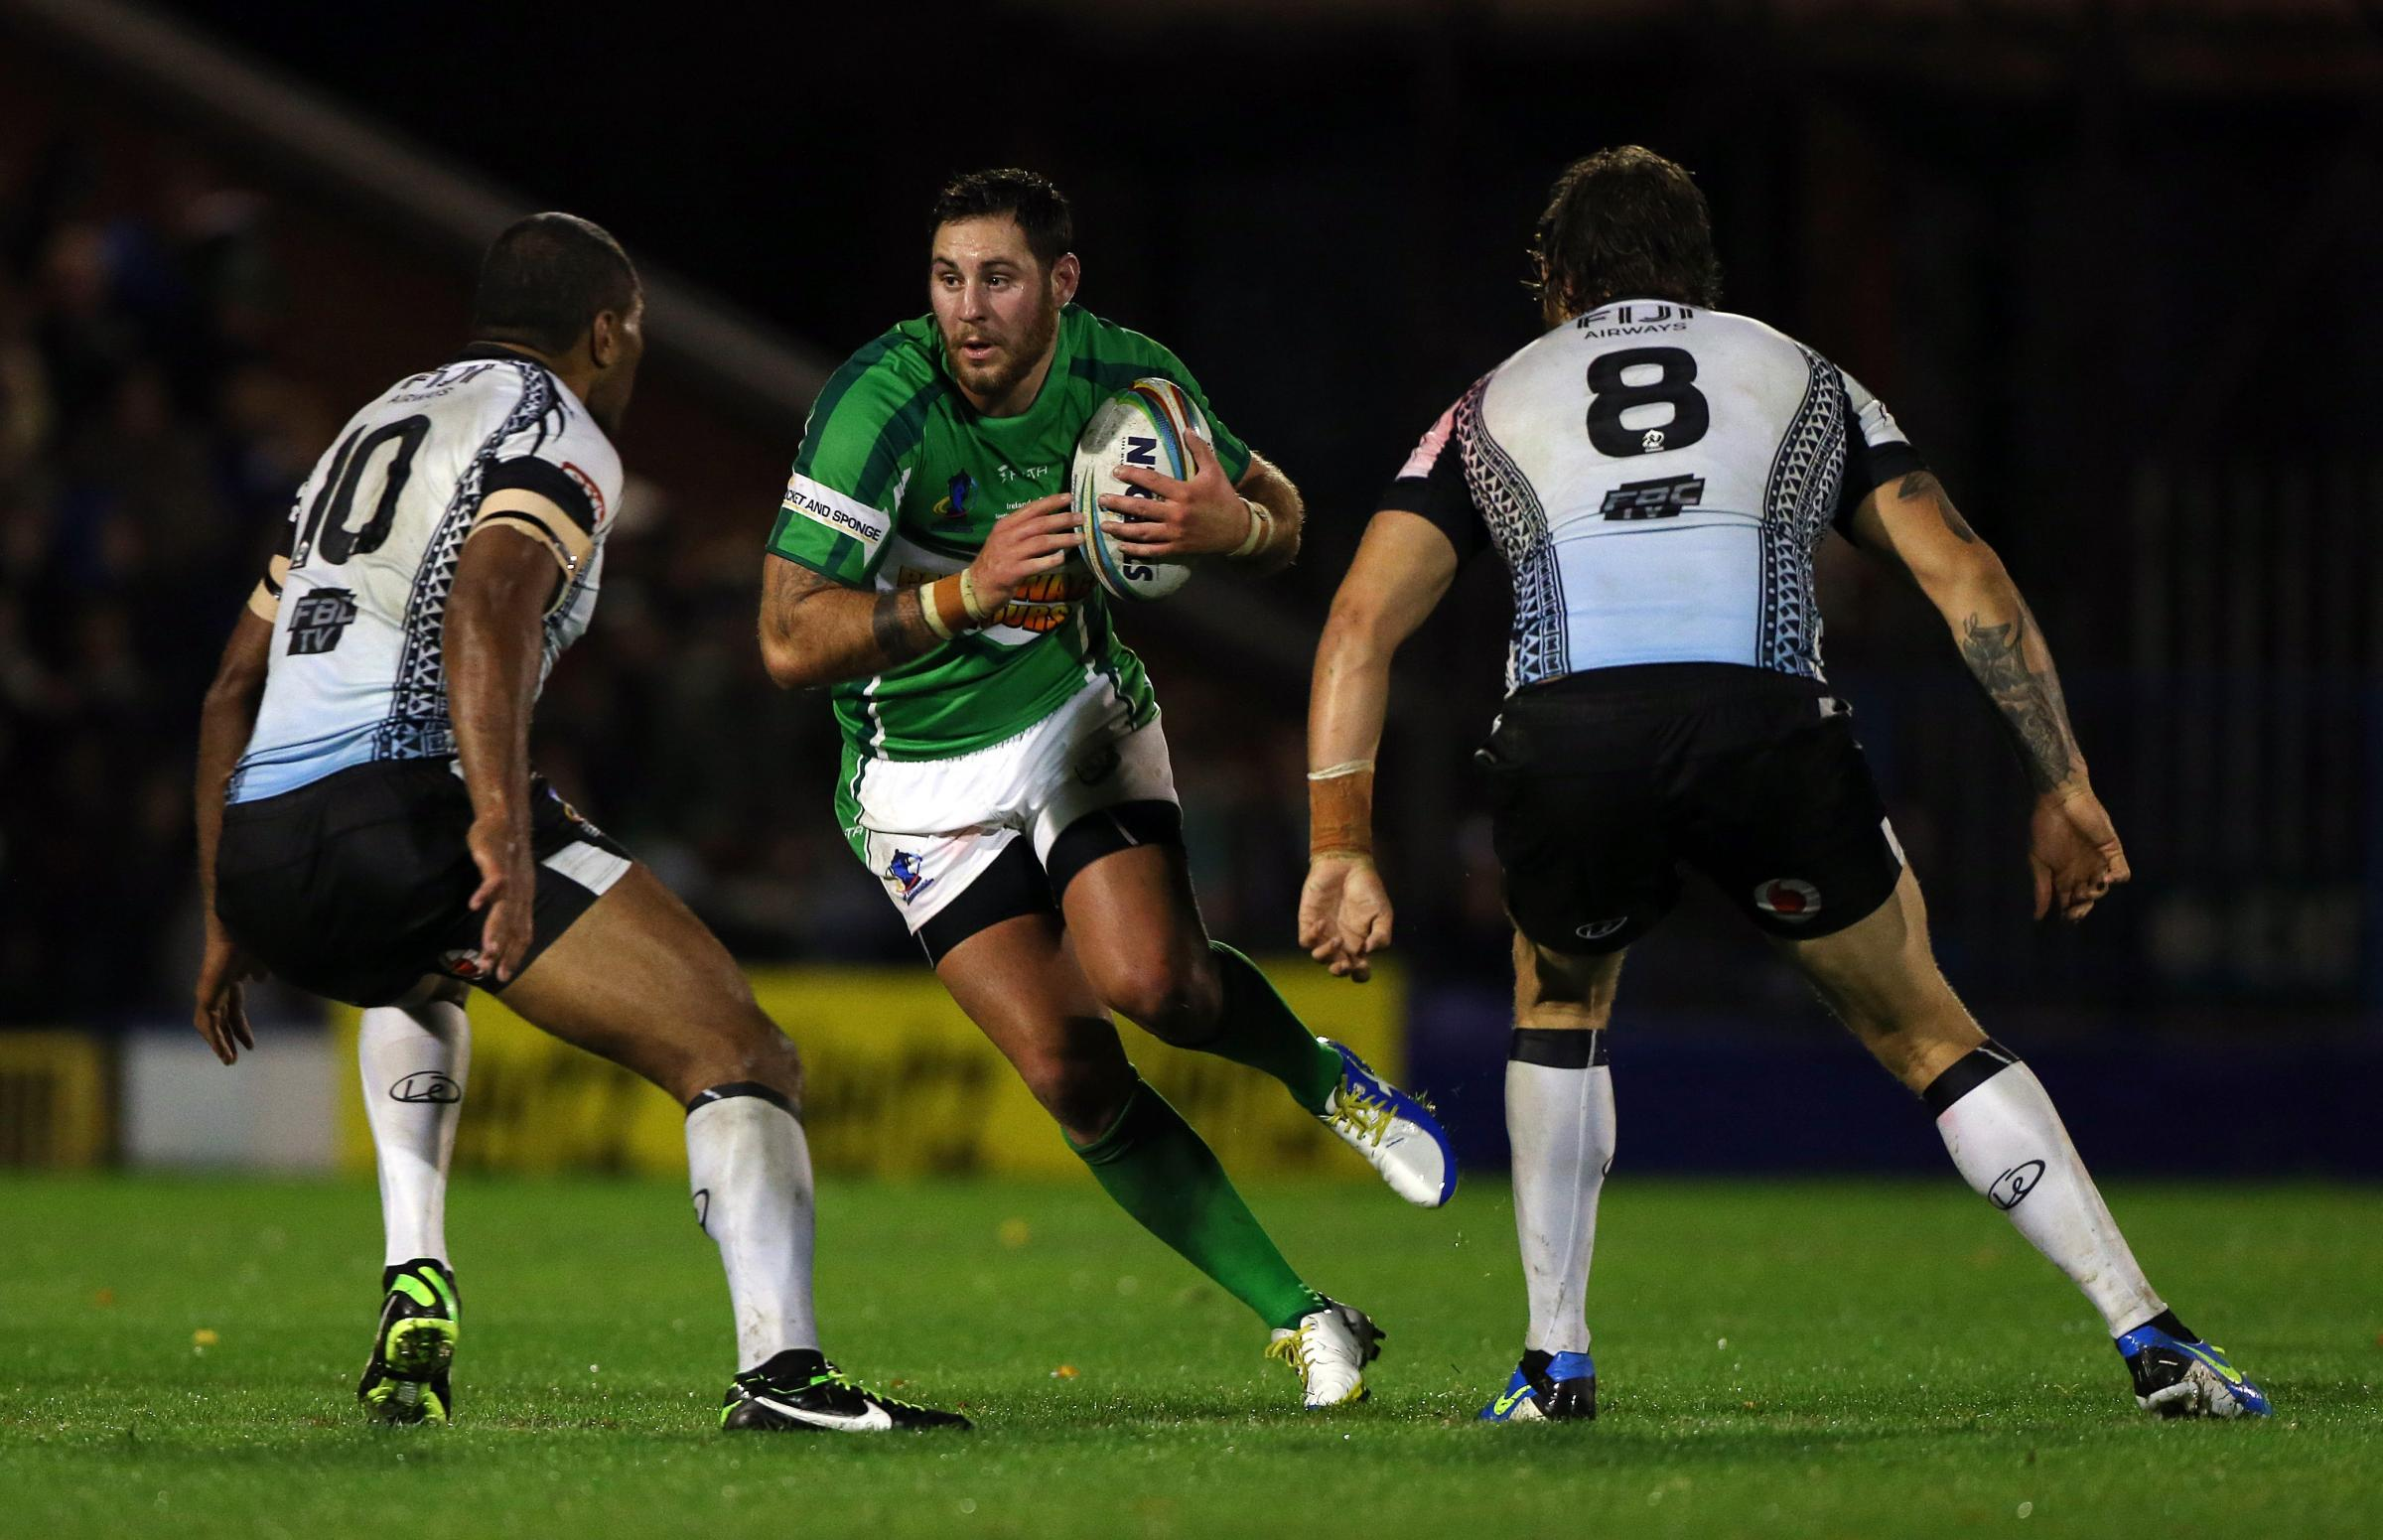 New Bulls recruit Kurt Haggerty pictured representing Ireland against Fiji during the 2013 World Cuo